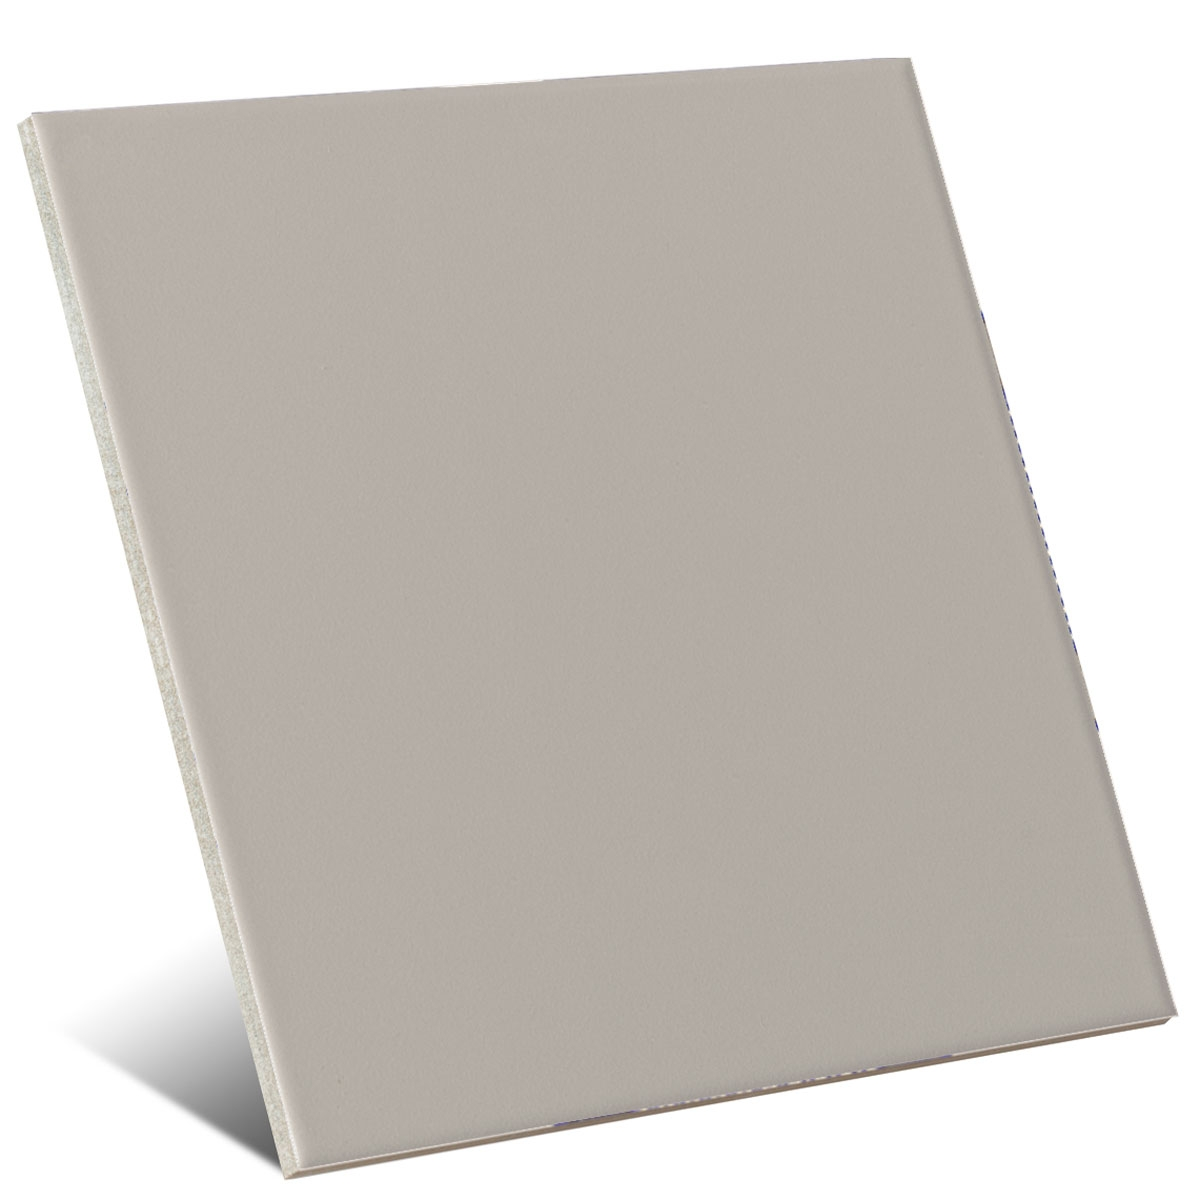 Color gris perla mate 20x20 cm (caja 1 m2)